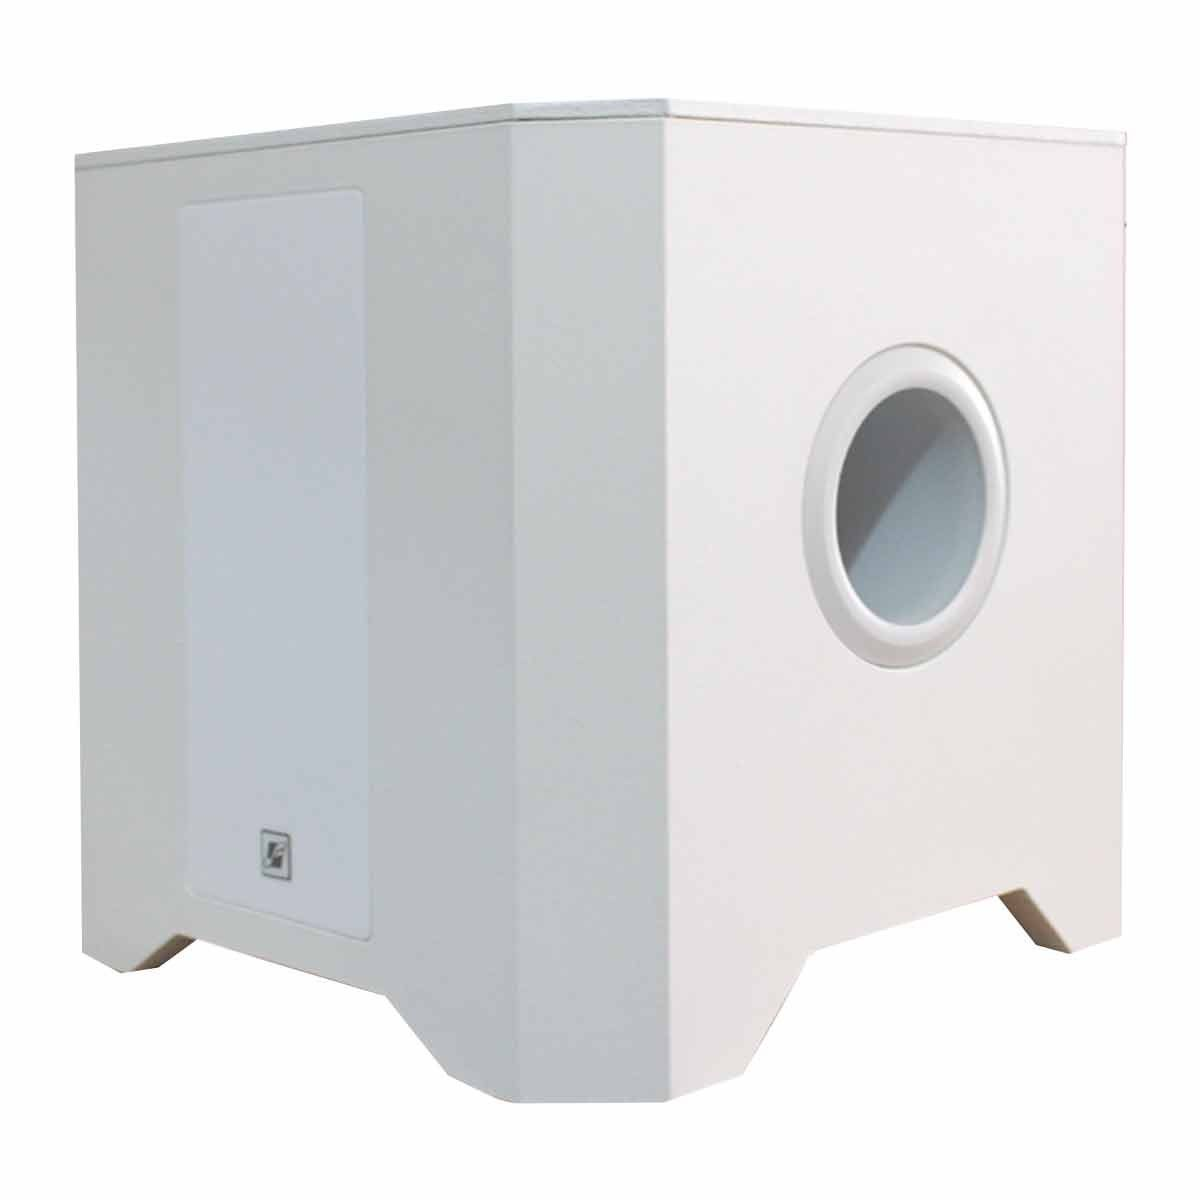 SUBWOOFER 10'' 150W RMS SW10 FRAHM